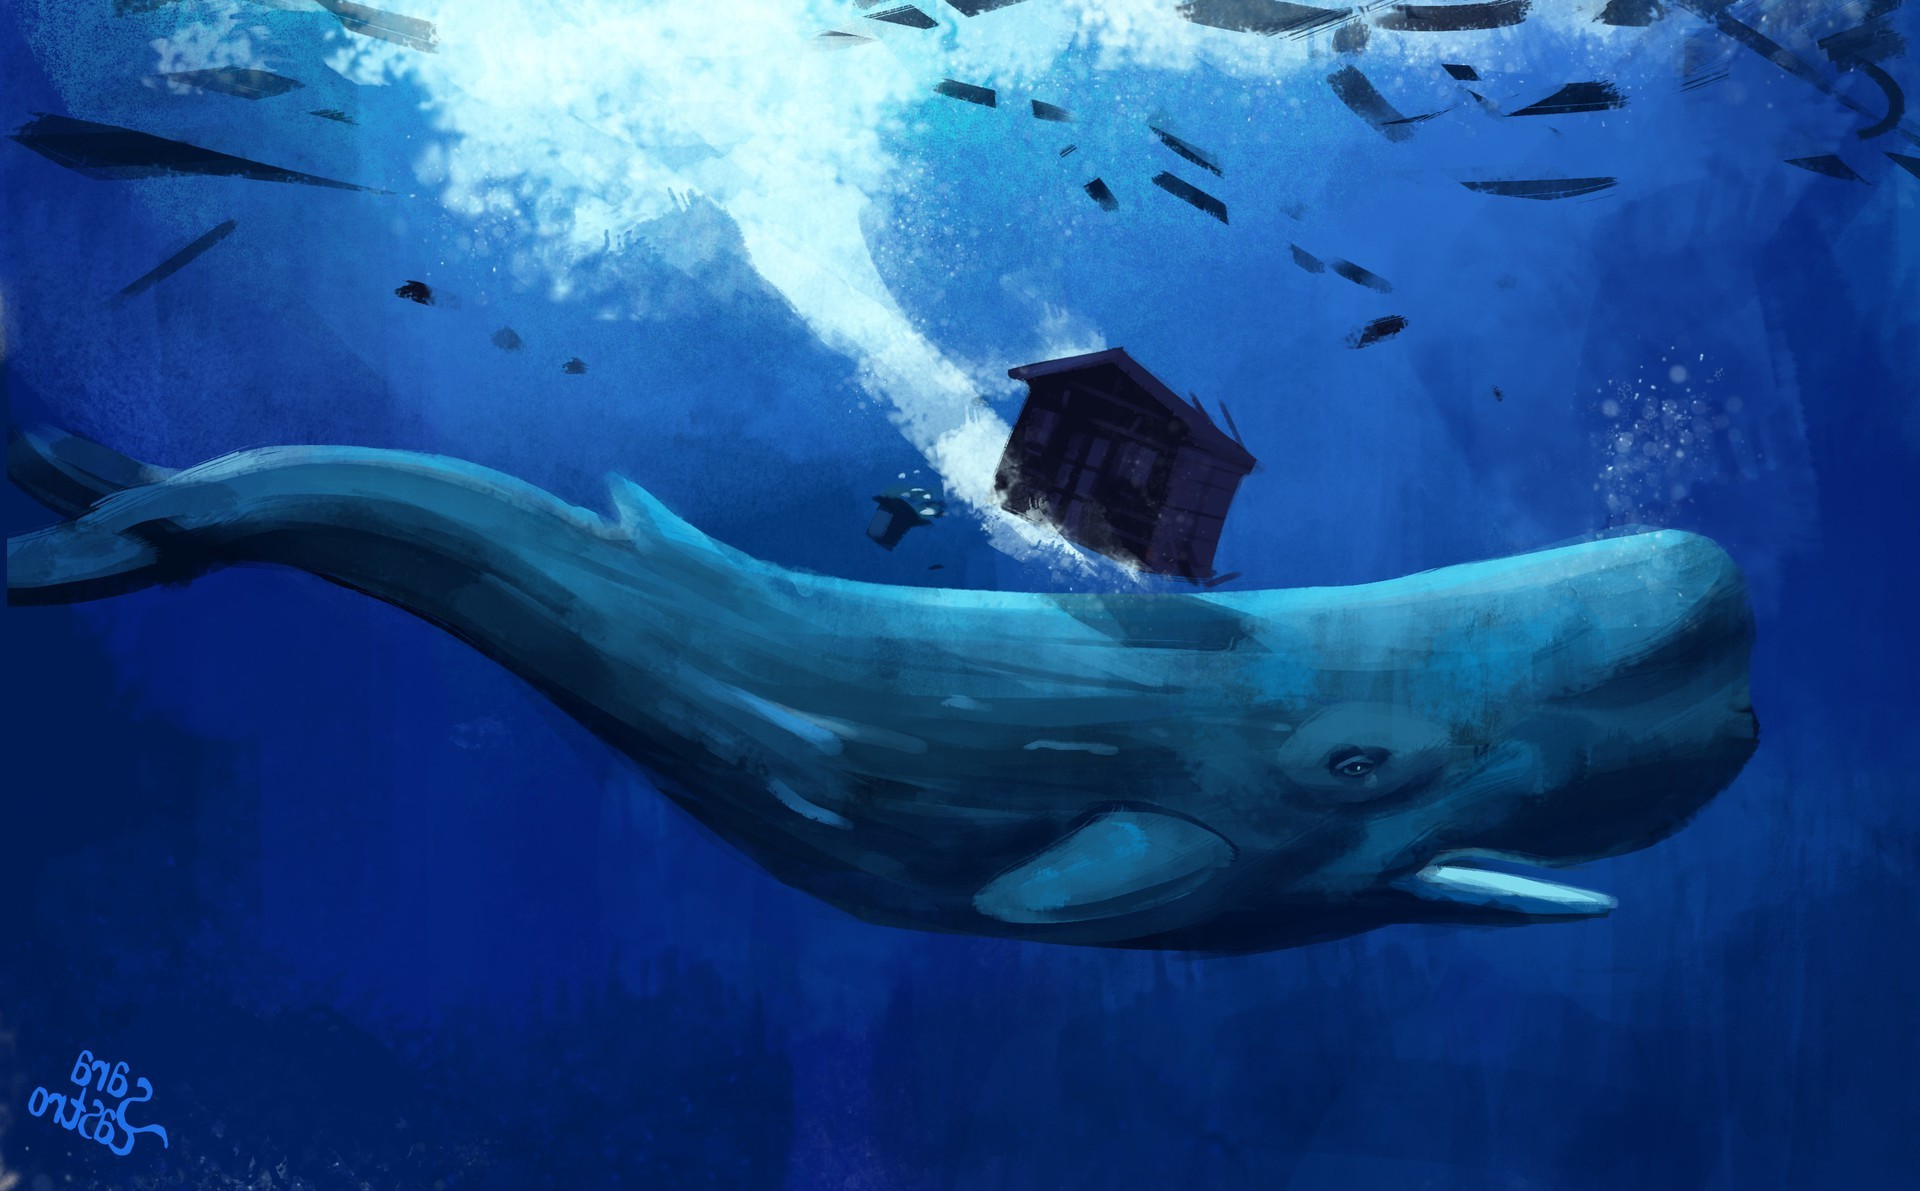 1920x1191 artwork, Animals, Whale, Underwater Wallpapers HD .